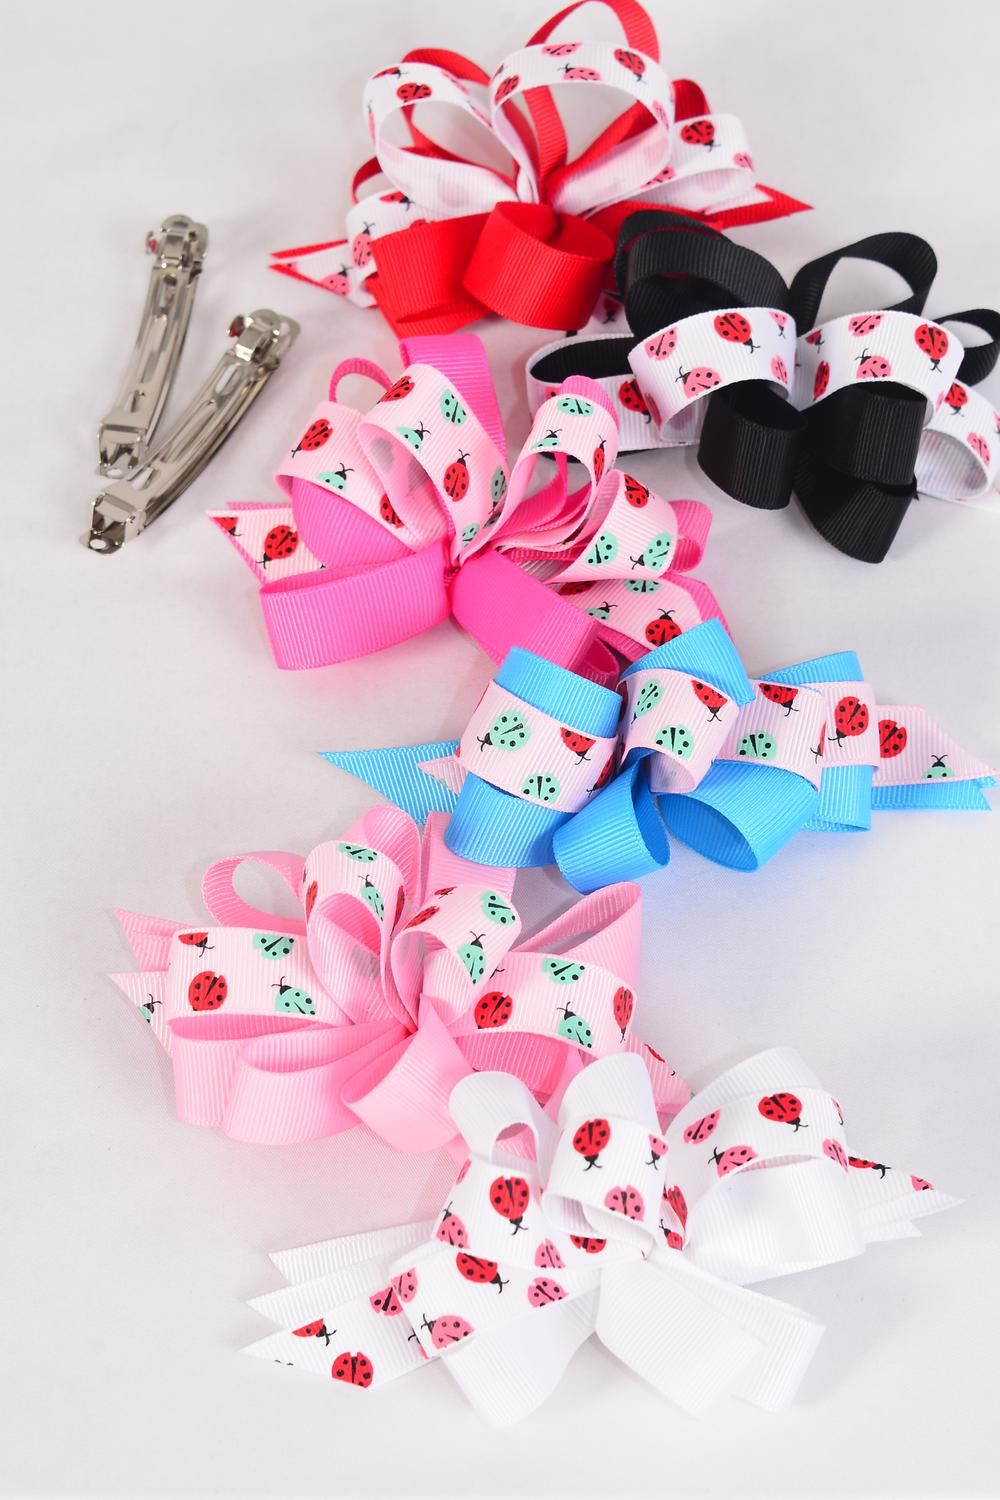 "Hair Bow Loop Bow Ladybugs Grosgrain Fabric Alligator Clip/DZ ** Alligator Clip** Bow Size-4.5""x 3.5"" Wide,2 of each Color Asst,Display Card & UPC Code,W Clear Box -"